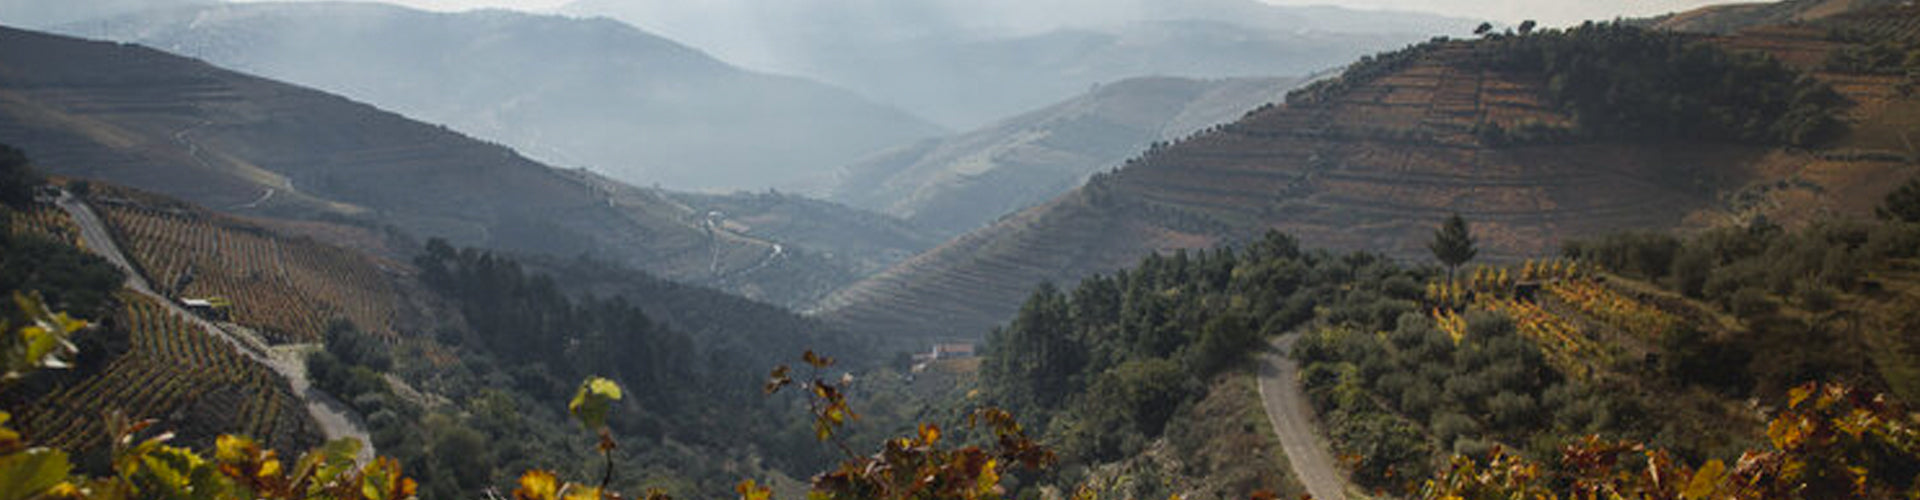 Elevated panoramic view across the Douro Vineyards in Portugal